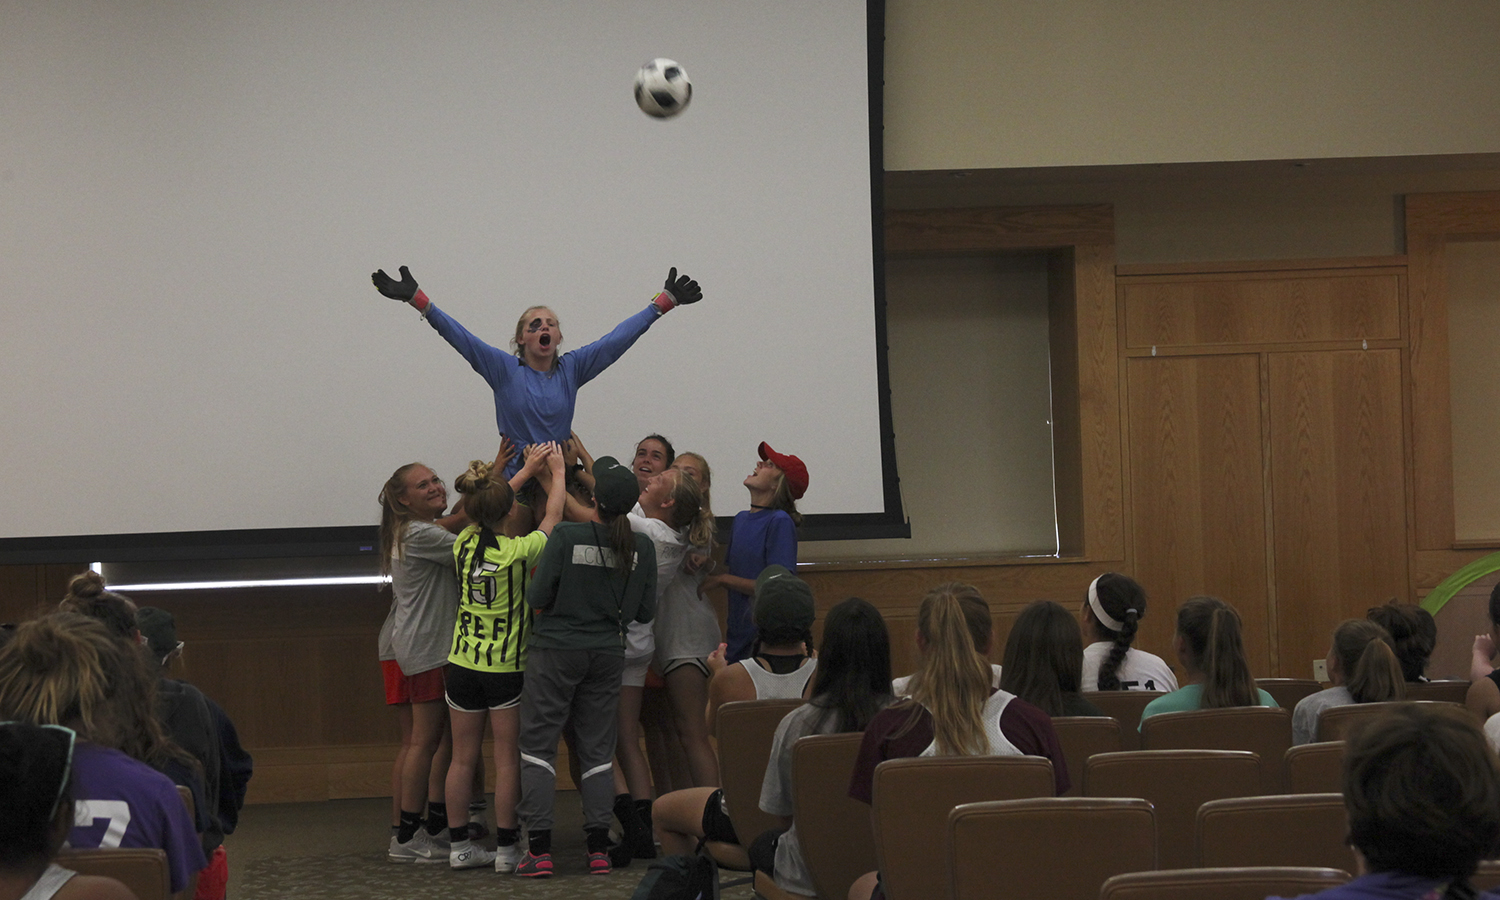 The William Smith Varisty Soccer team shows their talent during a variety show in the Vandervort Room. Annually, the Herons host a soccer camp for local middle and high school students.